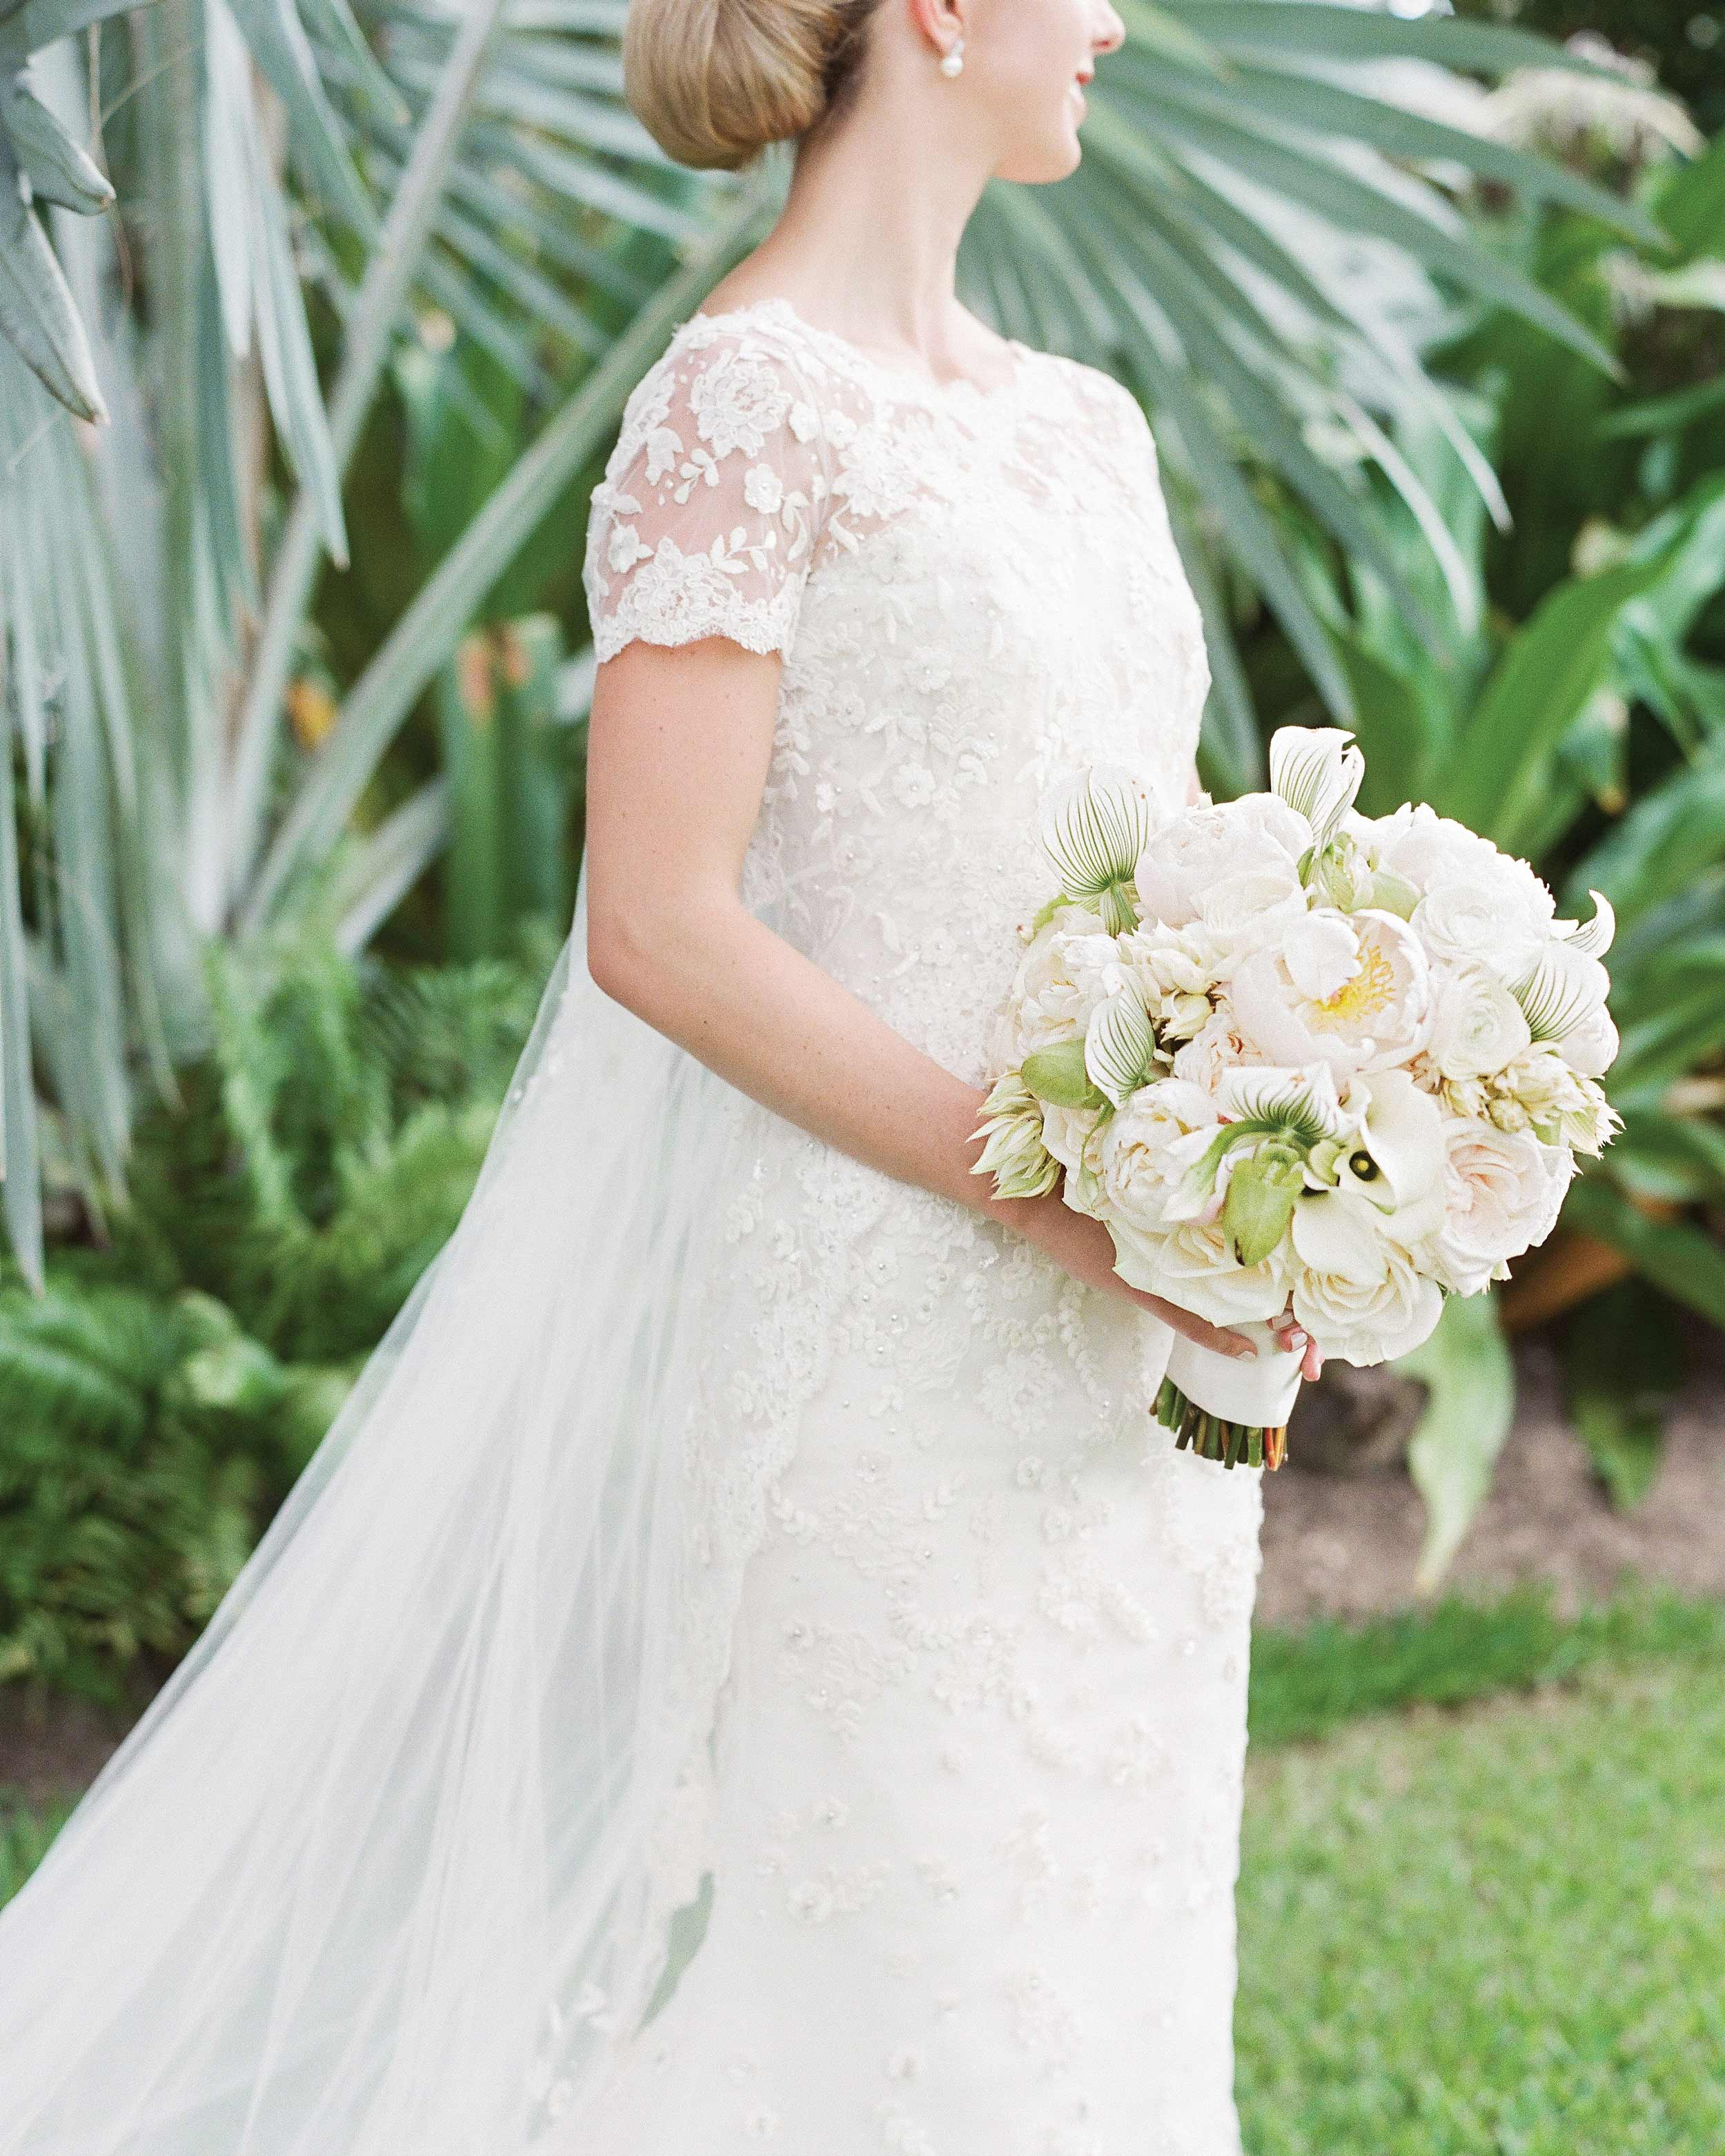 kelsey-casey-real-wedding-brides-dress-and-bouquet.jpg